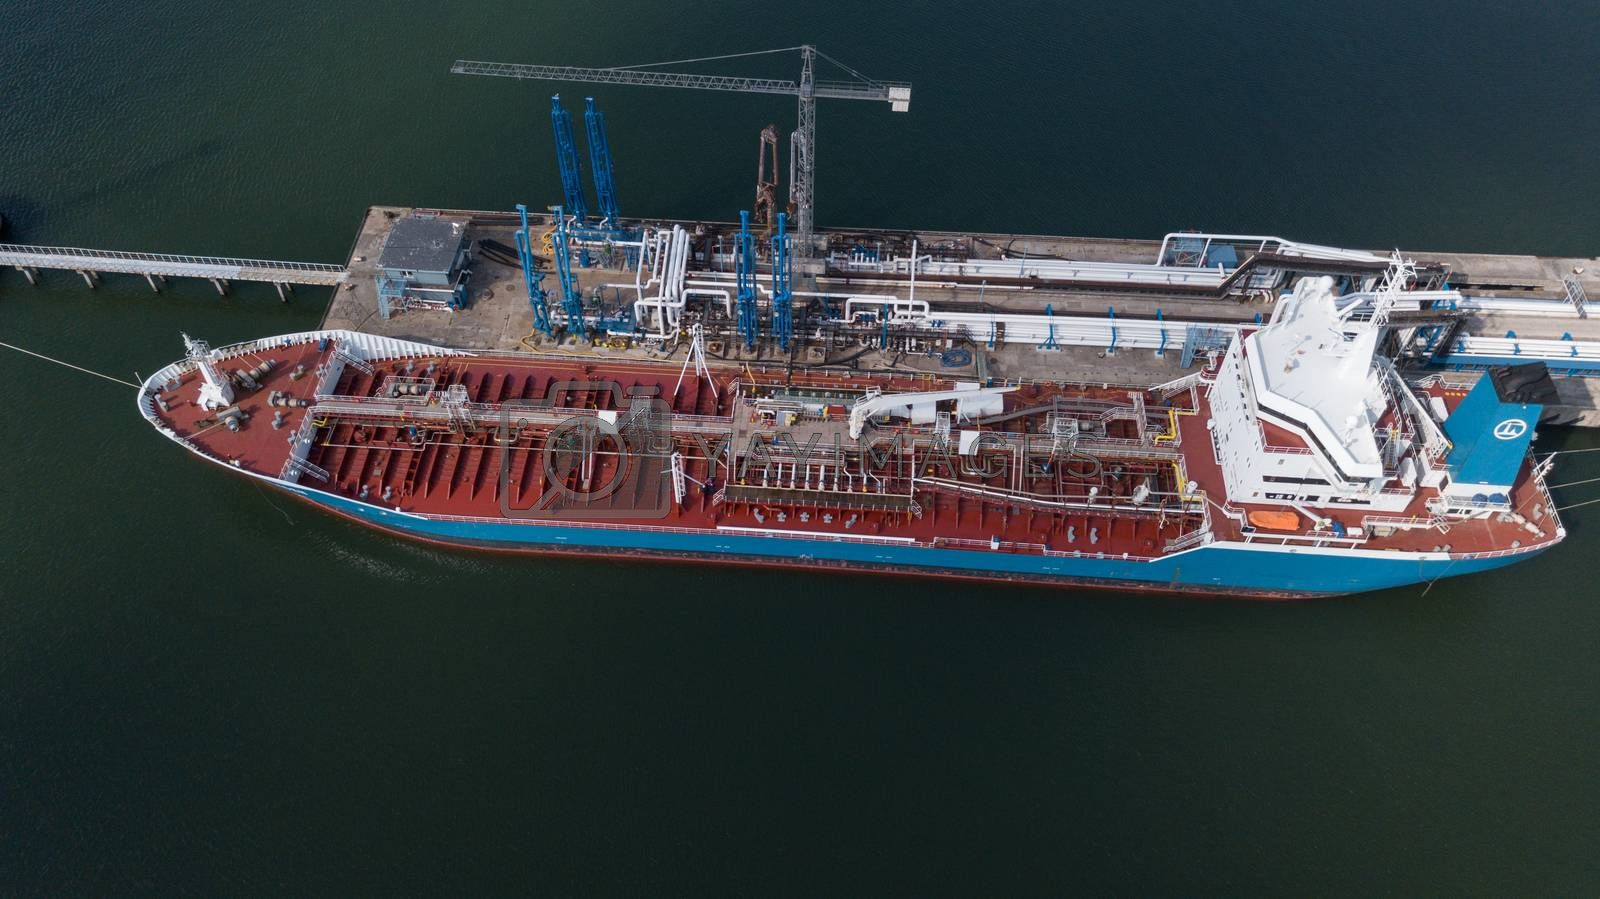 Royalty free image of ship going in to Harbor Ventspils Latvia Aerial view of countryside drone top view by desant7474